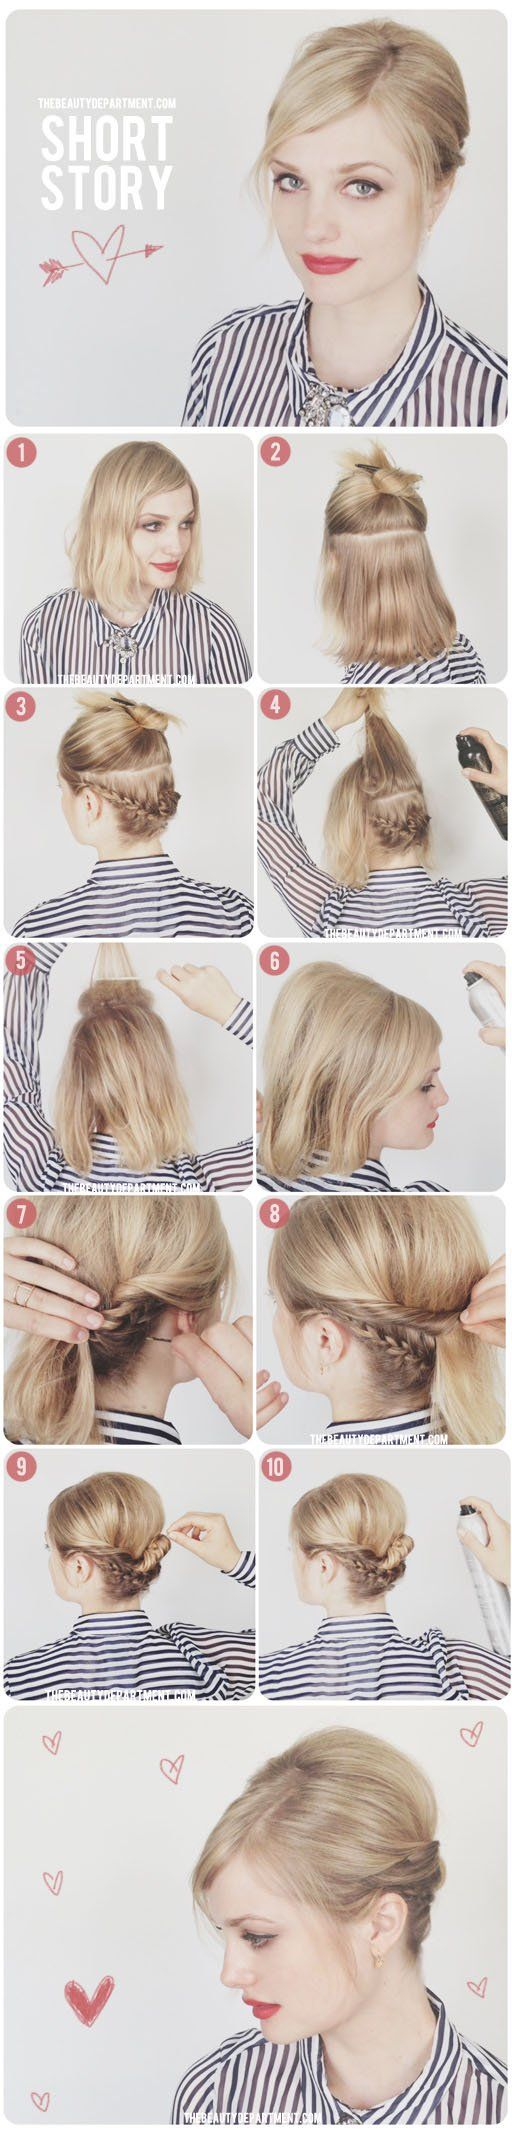 13 DIY Wedding Hairstyles To Try On Your Own | Short hair, Hair ...